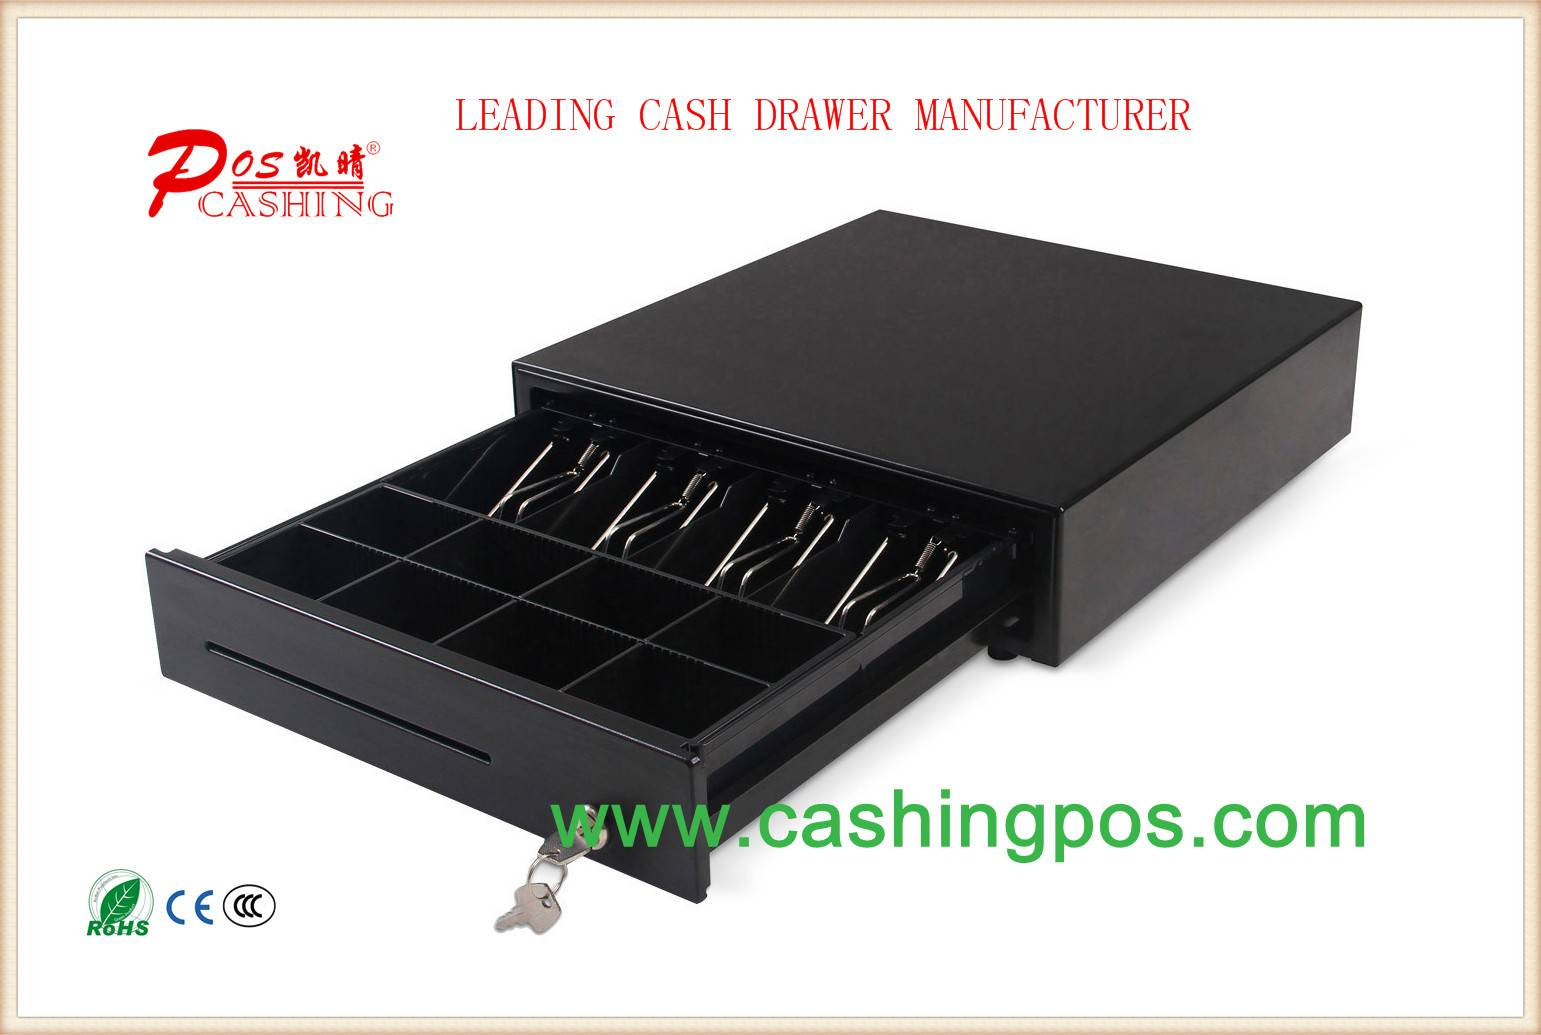 QR-350 Cash Drawer